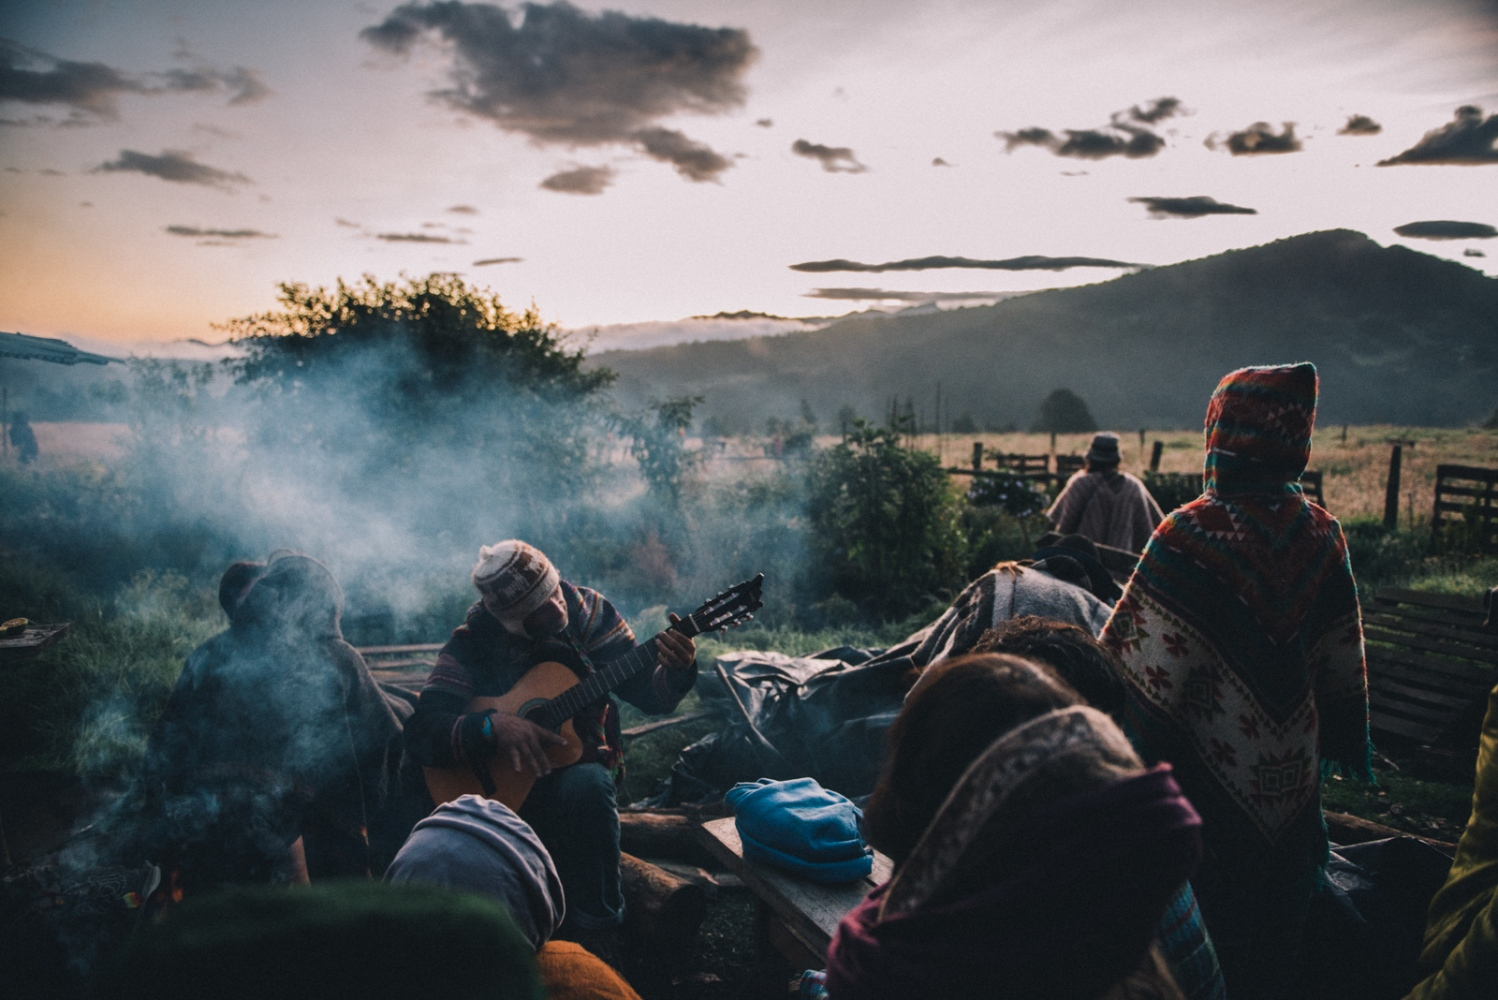 Travelers and festival goers emerge from the maloca to greet the rising sun after a nightlong ceremony of Cacao and Ambira in La Calera, Colombia.